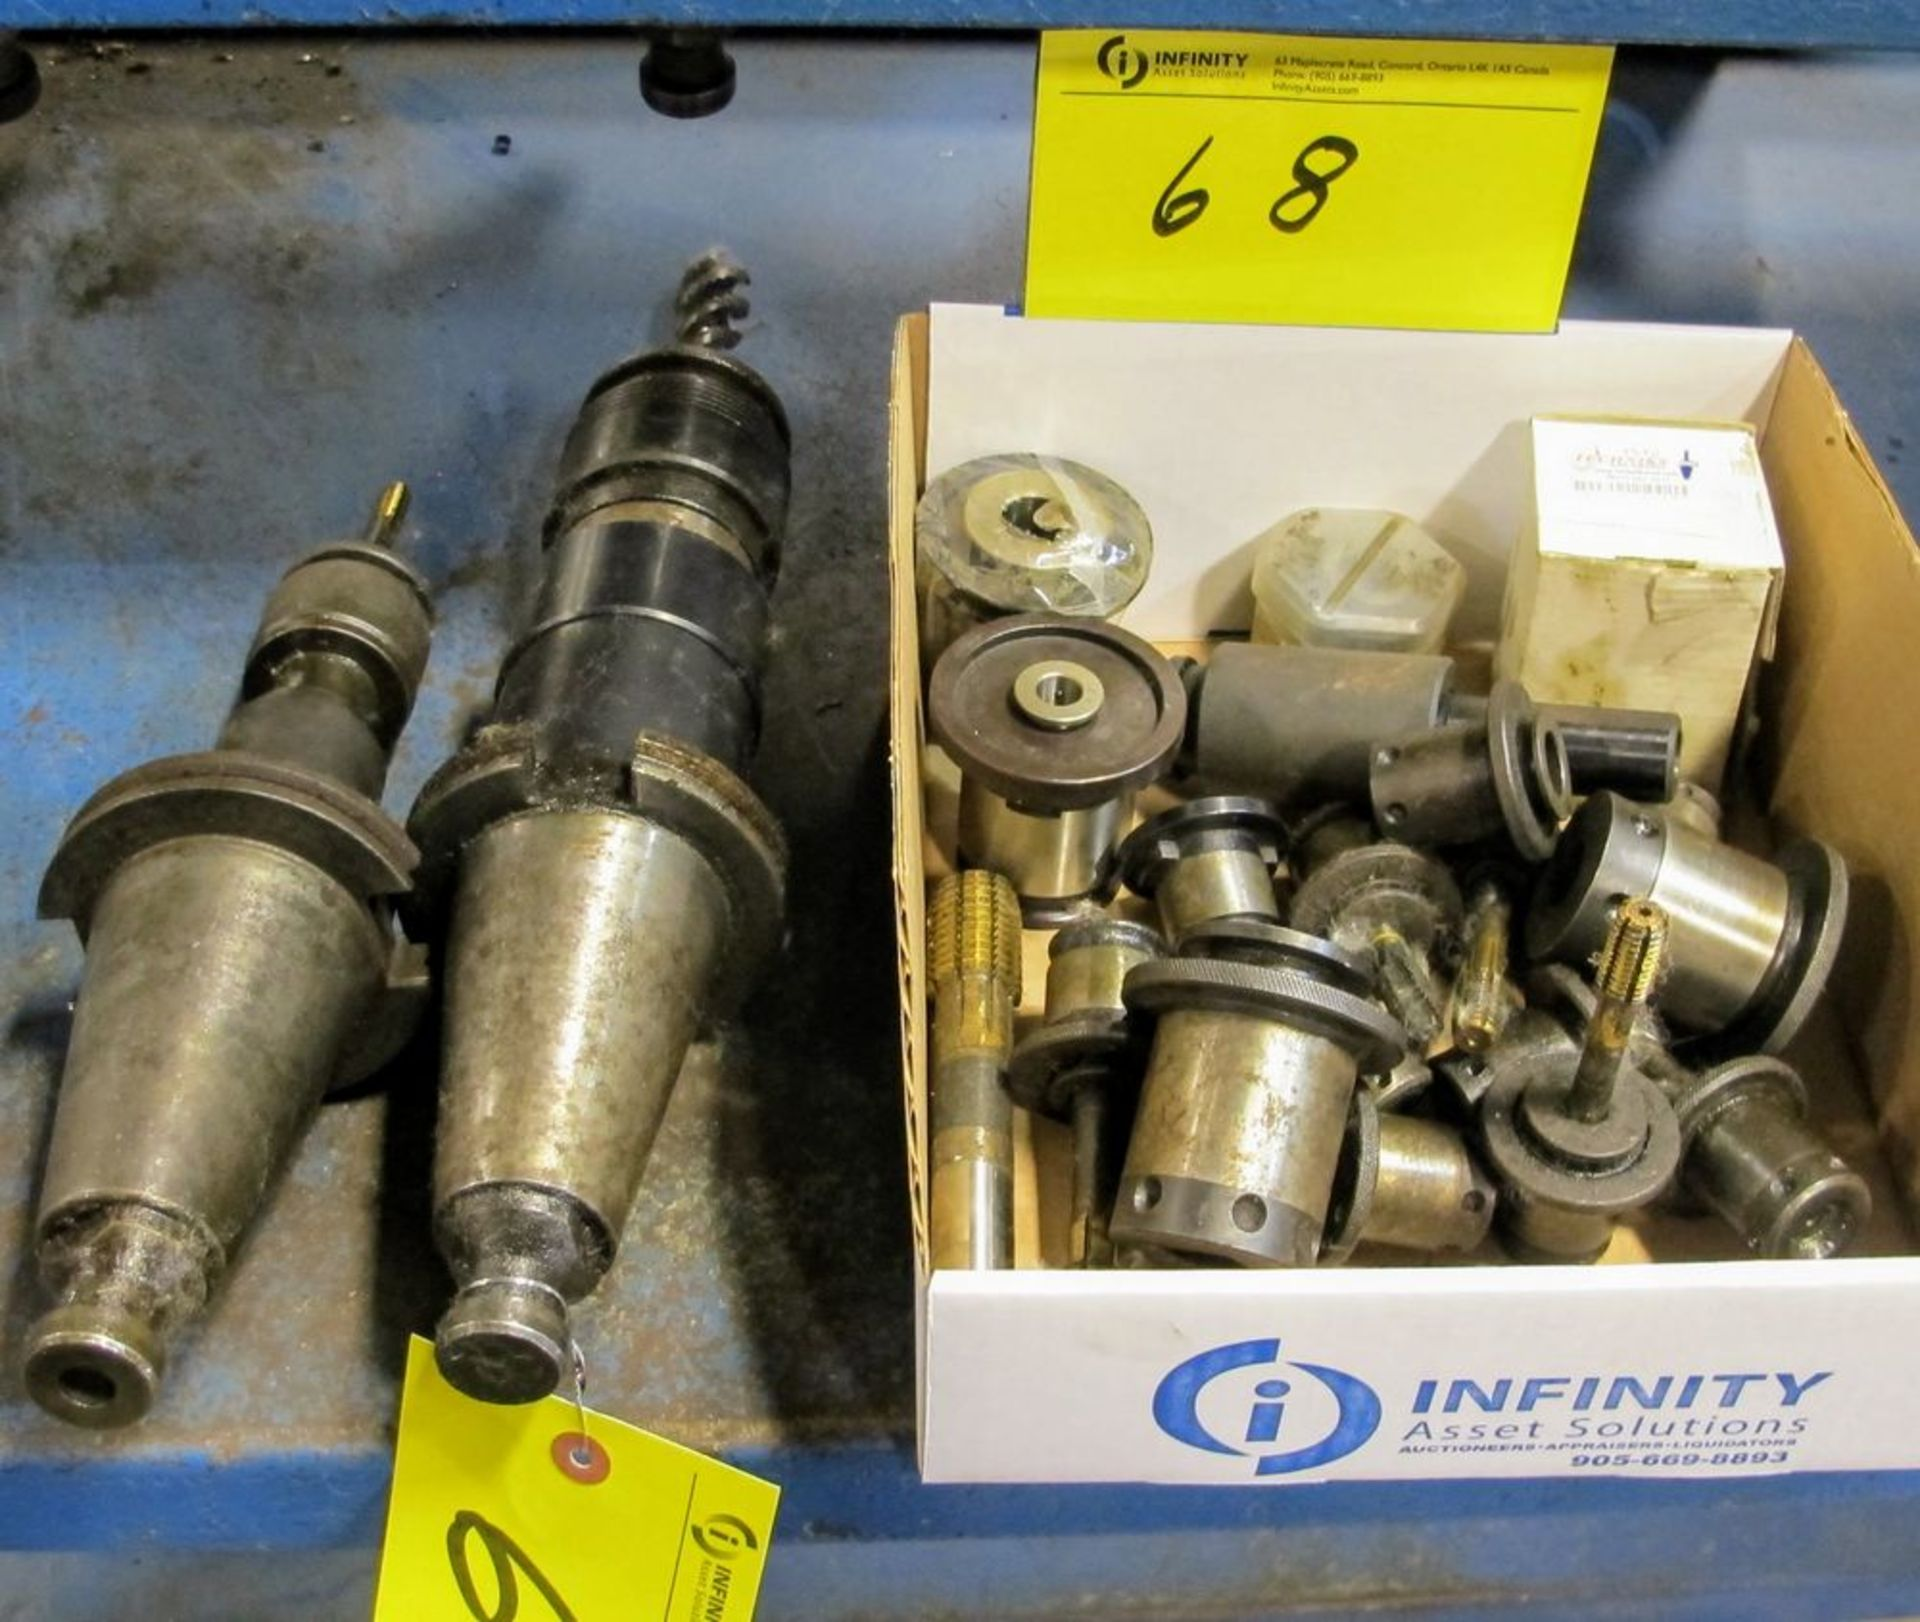 Lot 68 - LOT ASST. QUICK RELEASE HOLDERS W/ (2) 50 TAPER TOOL HOLDERS AND TOOLING